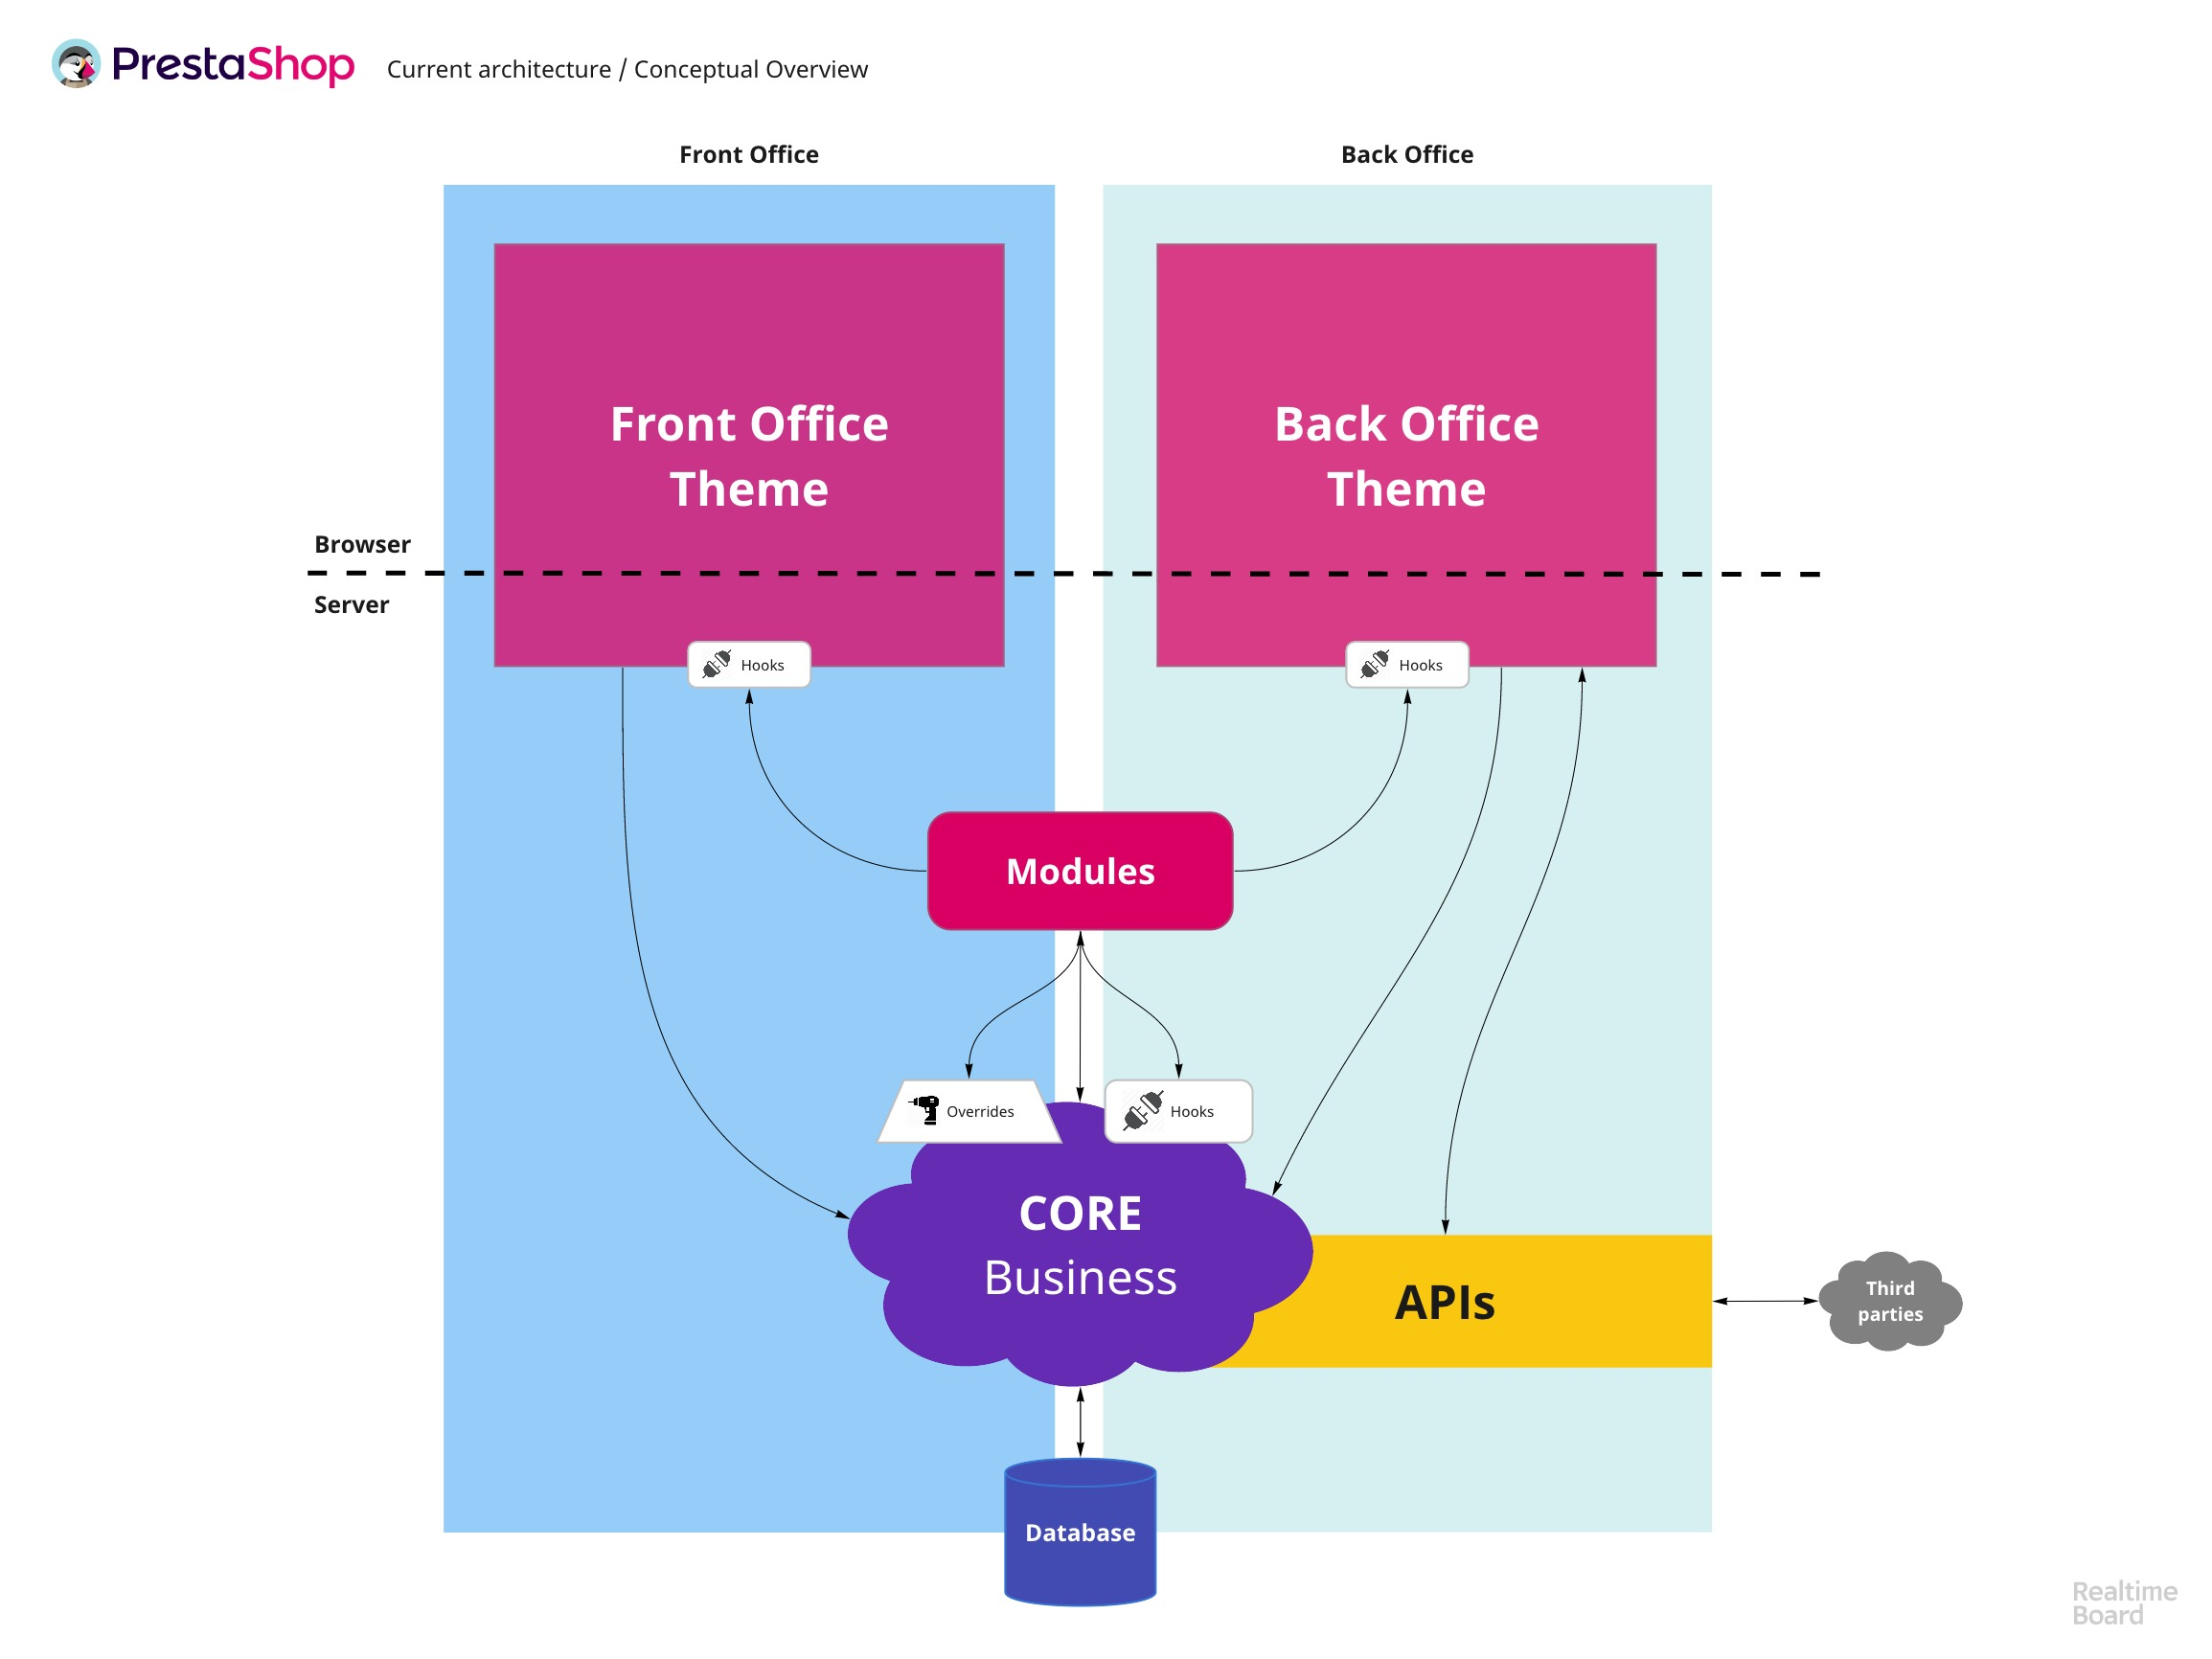 Figure 1: Basic overview of PrestaShop 1.7's architecture, early 2019